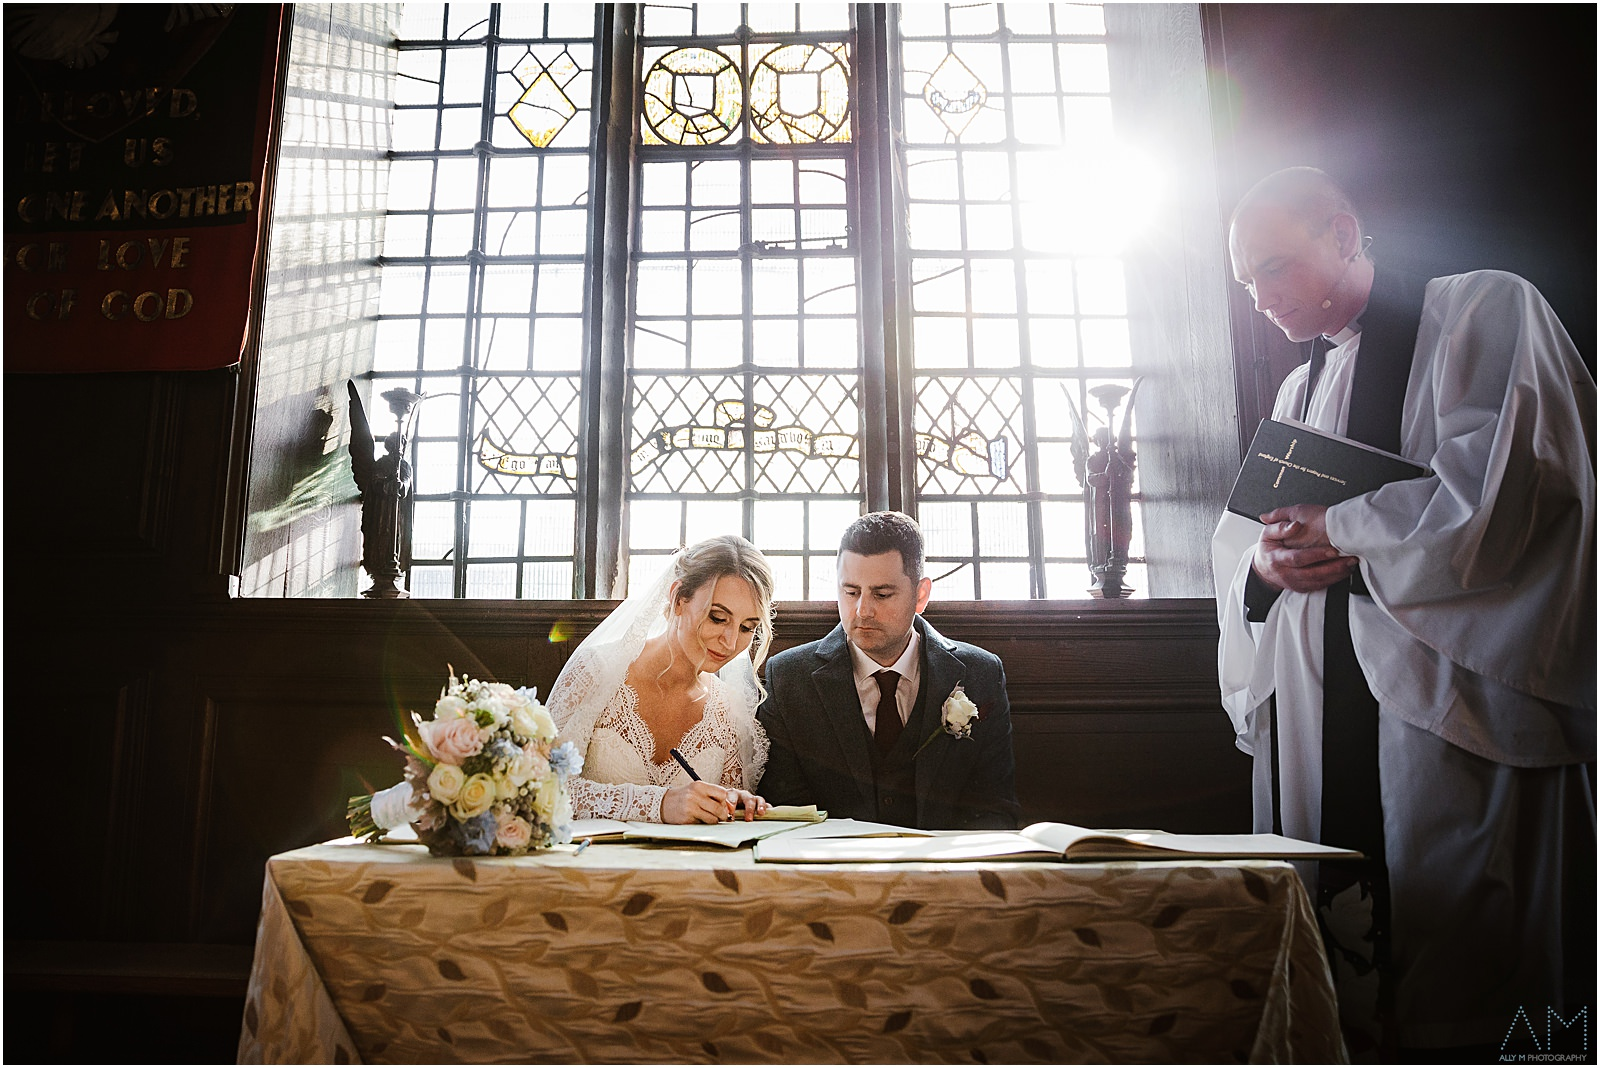 Signing of the wedding certificate in Manchester